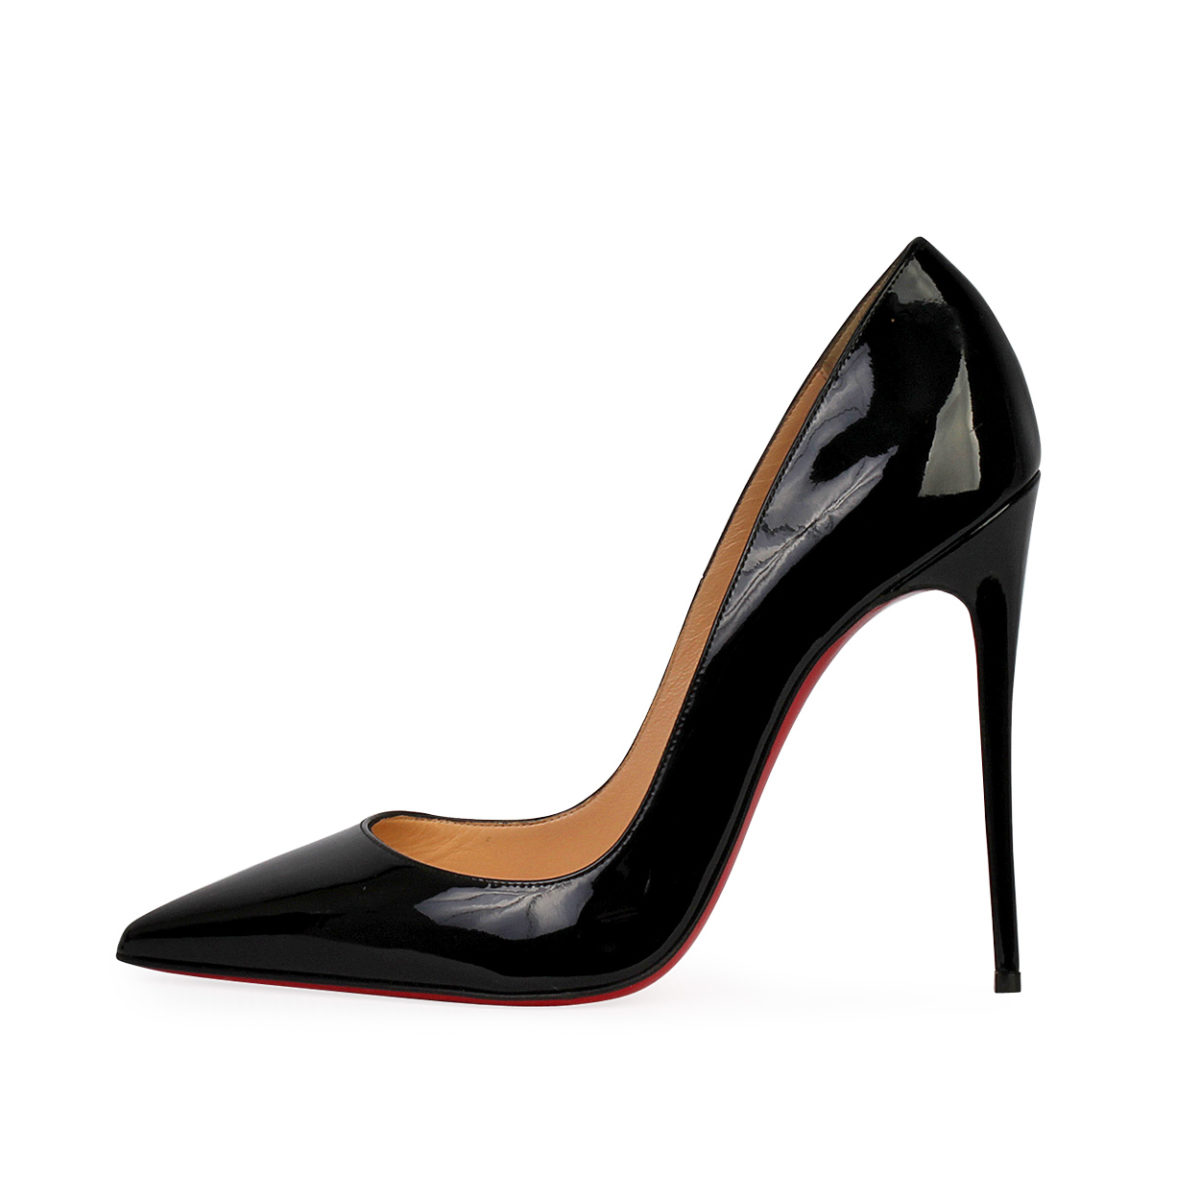 online retailer 48ede e68b4 CHRISTIAN LOUBOUTIN Patent Leather So Kate 120 Pumps Black - S: 39 (6)